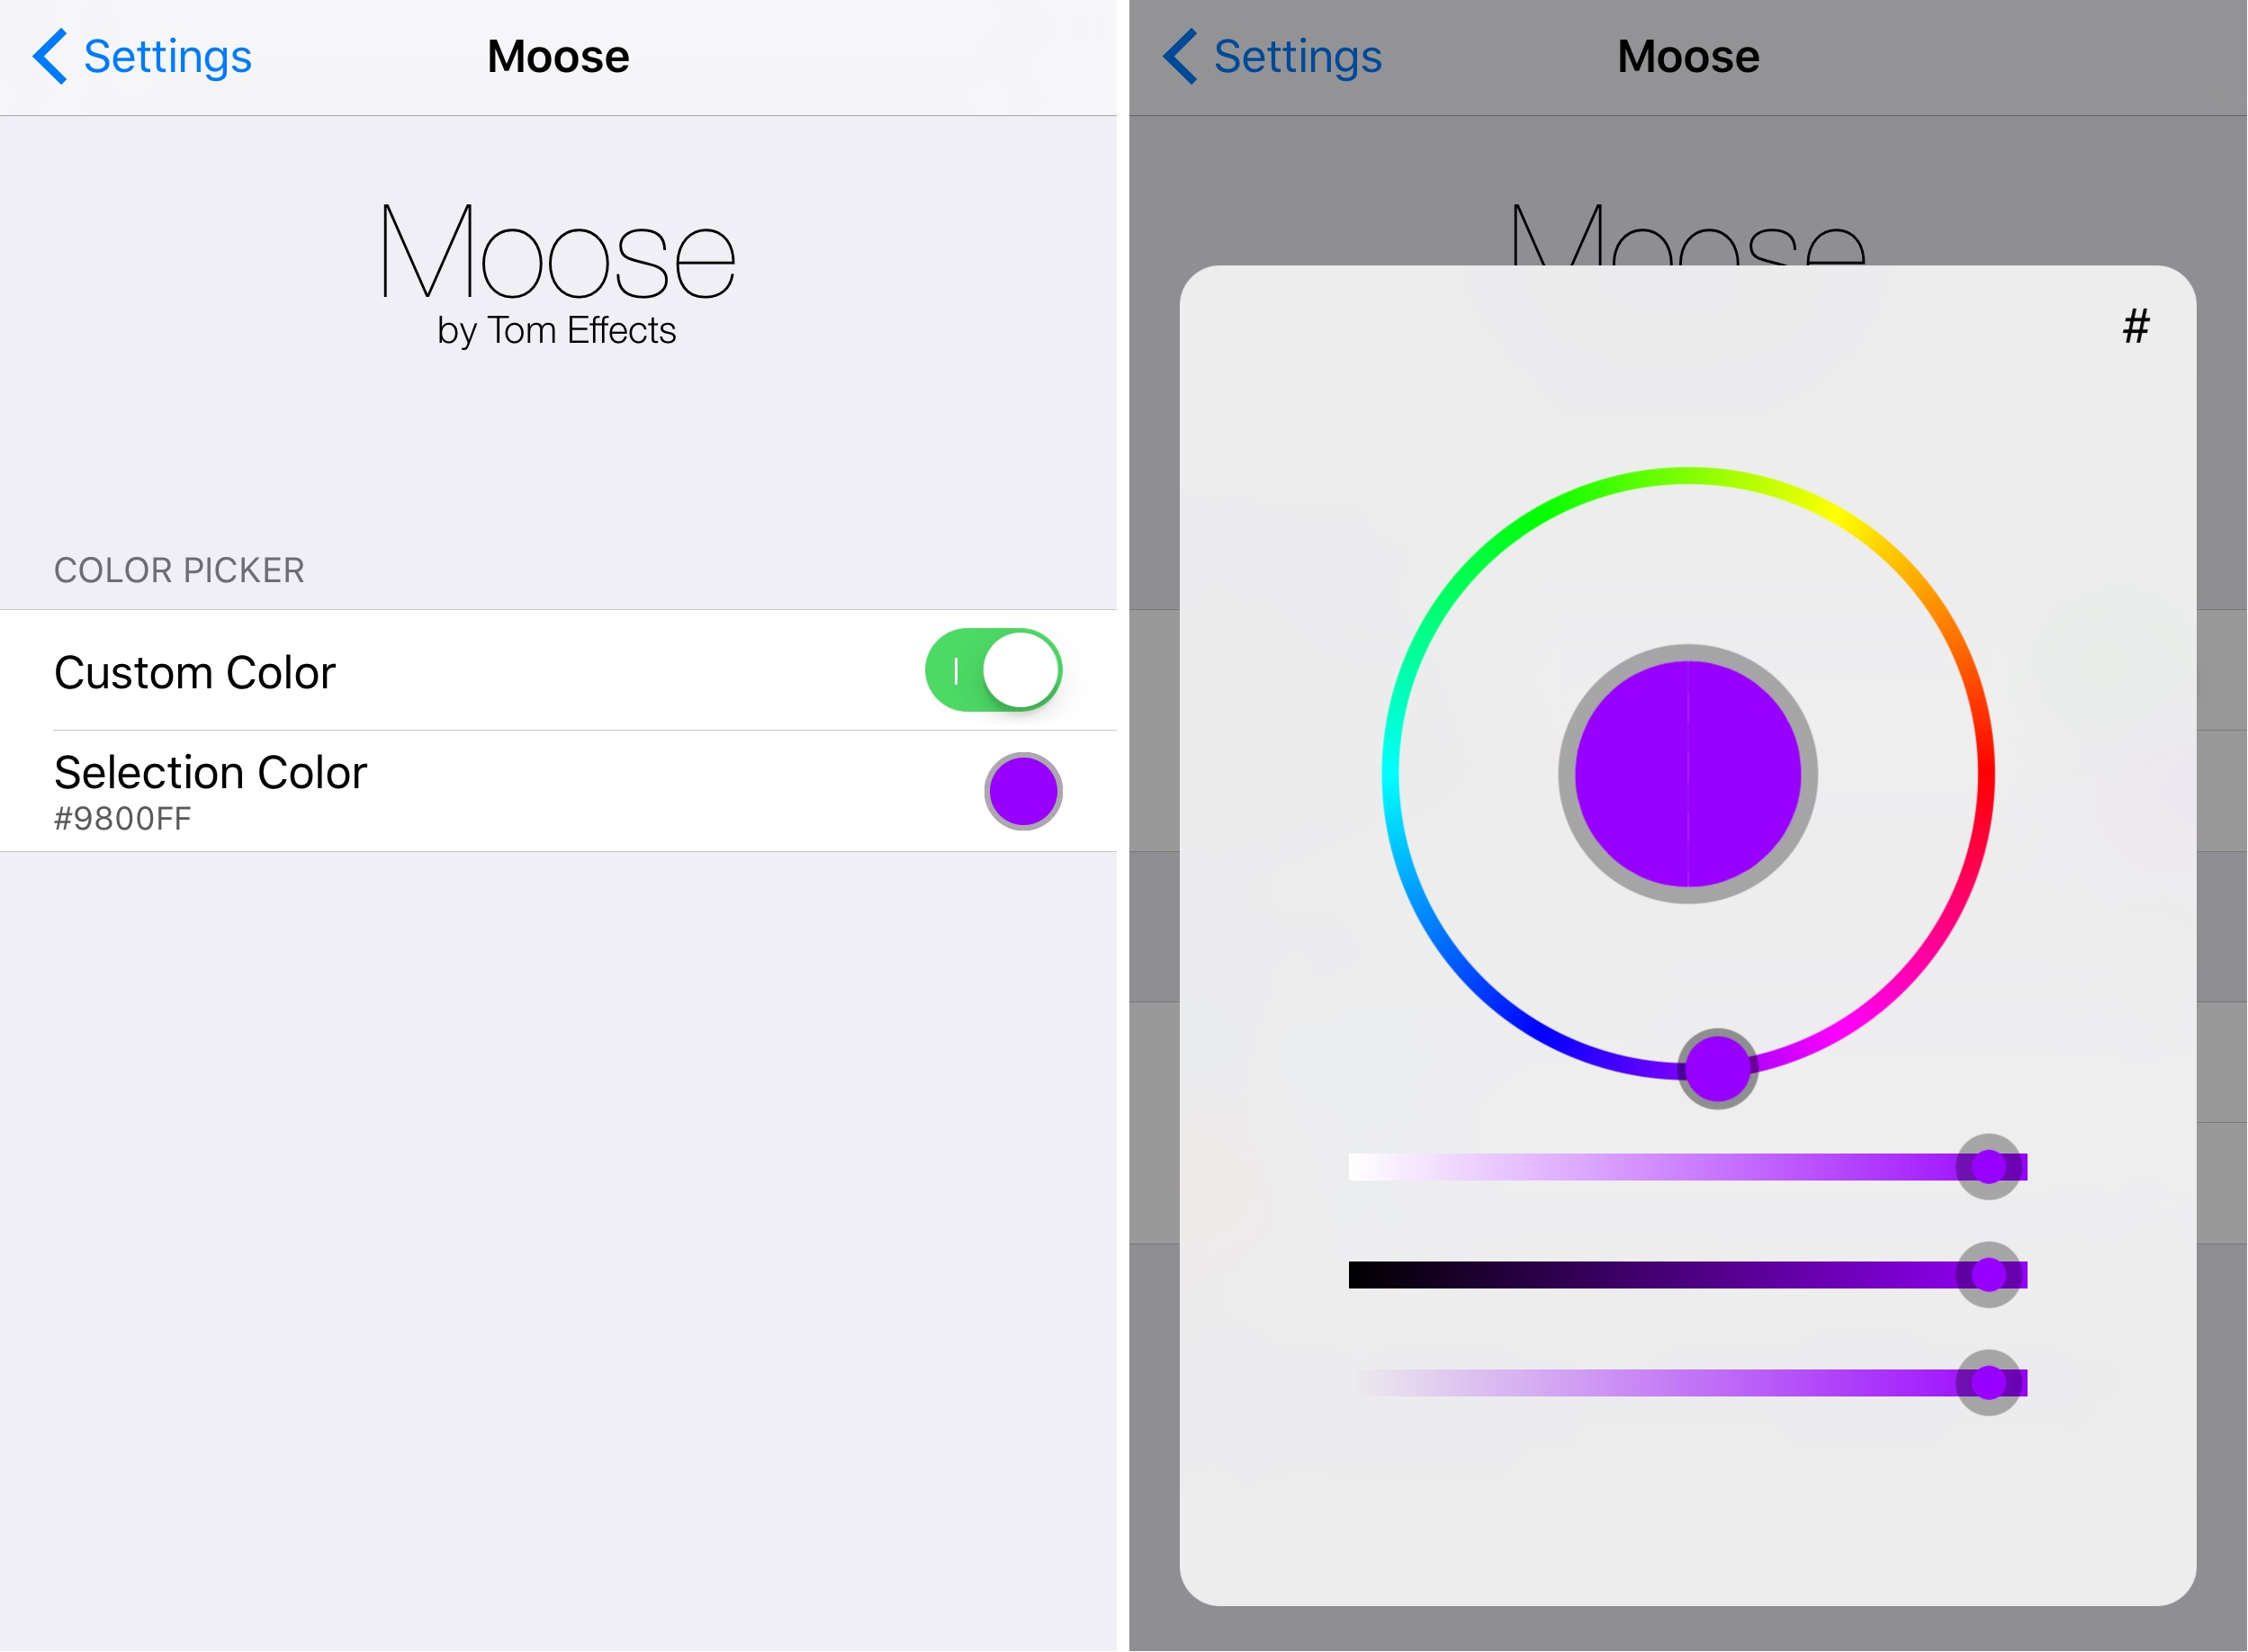 Colorize your iPhone's cursor and text selection tools with